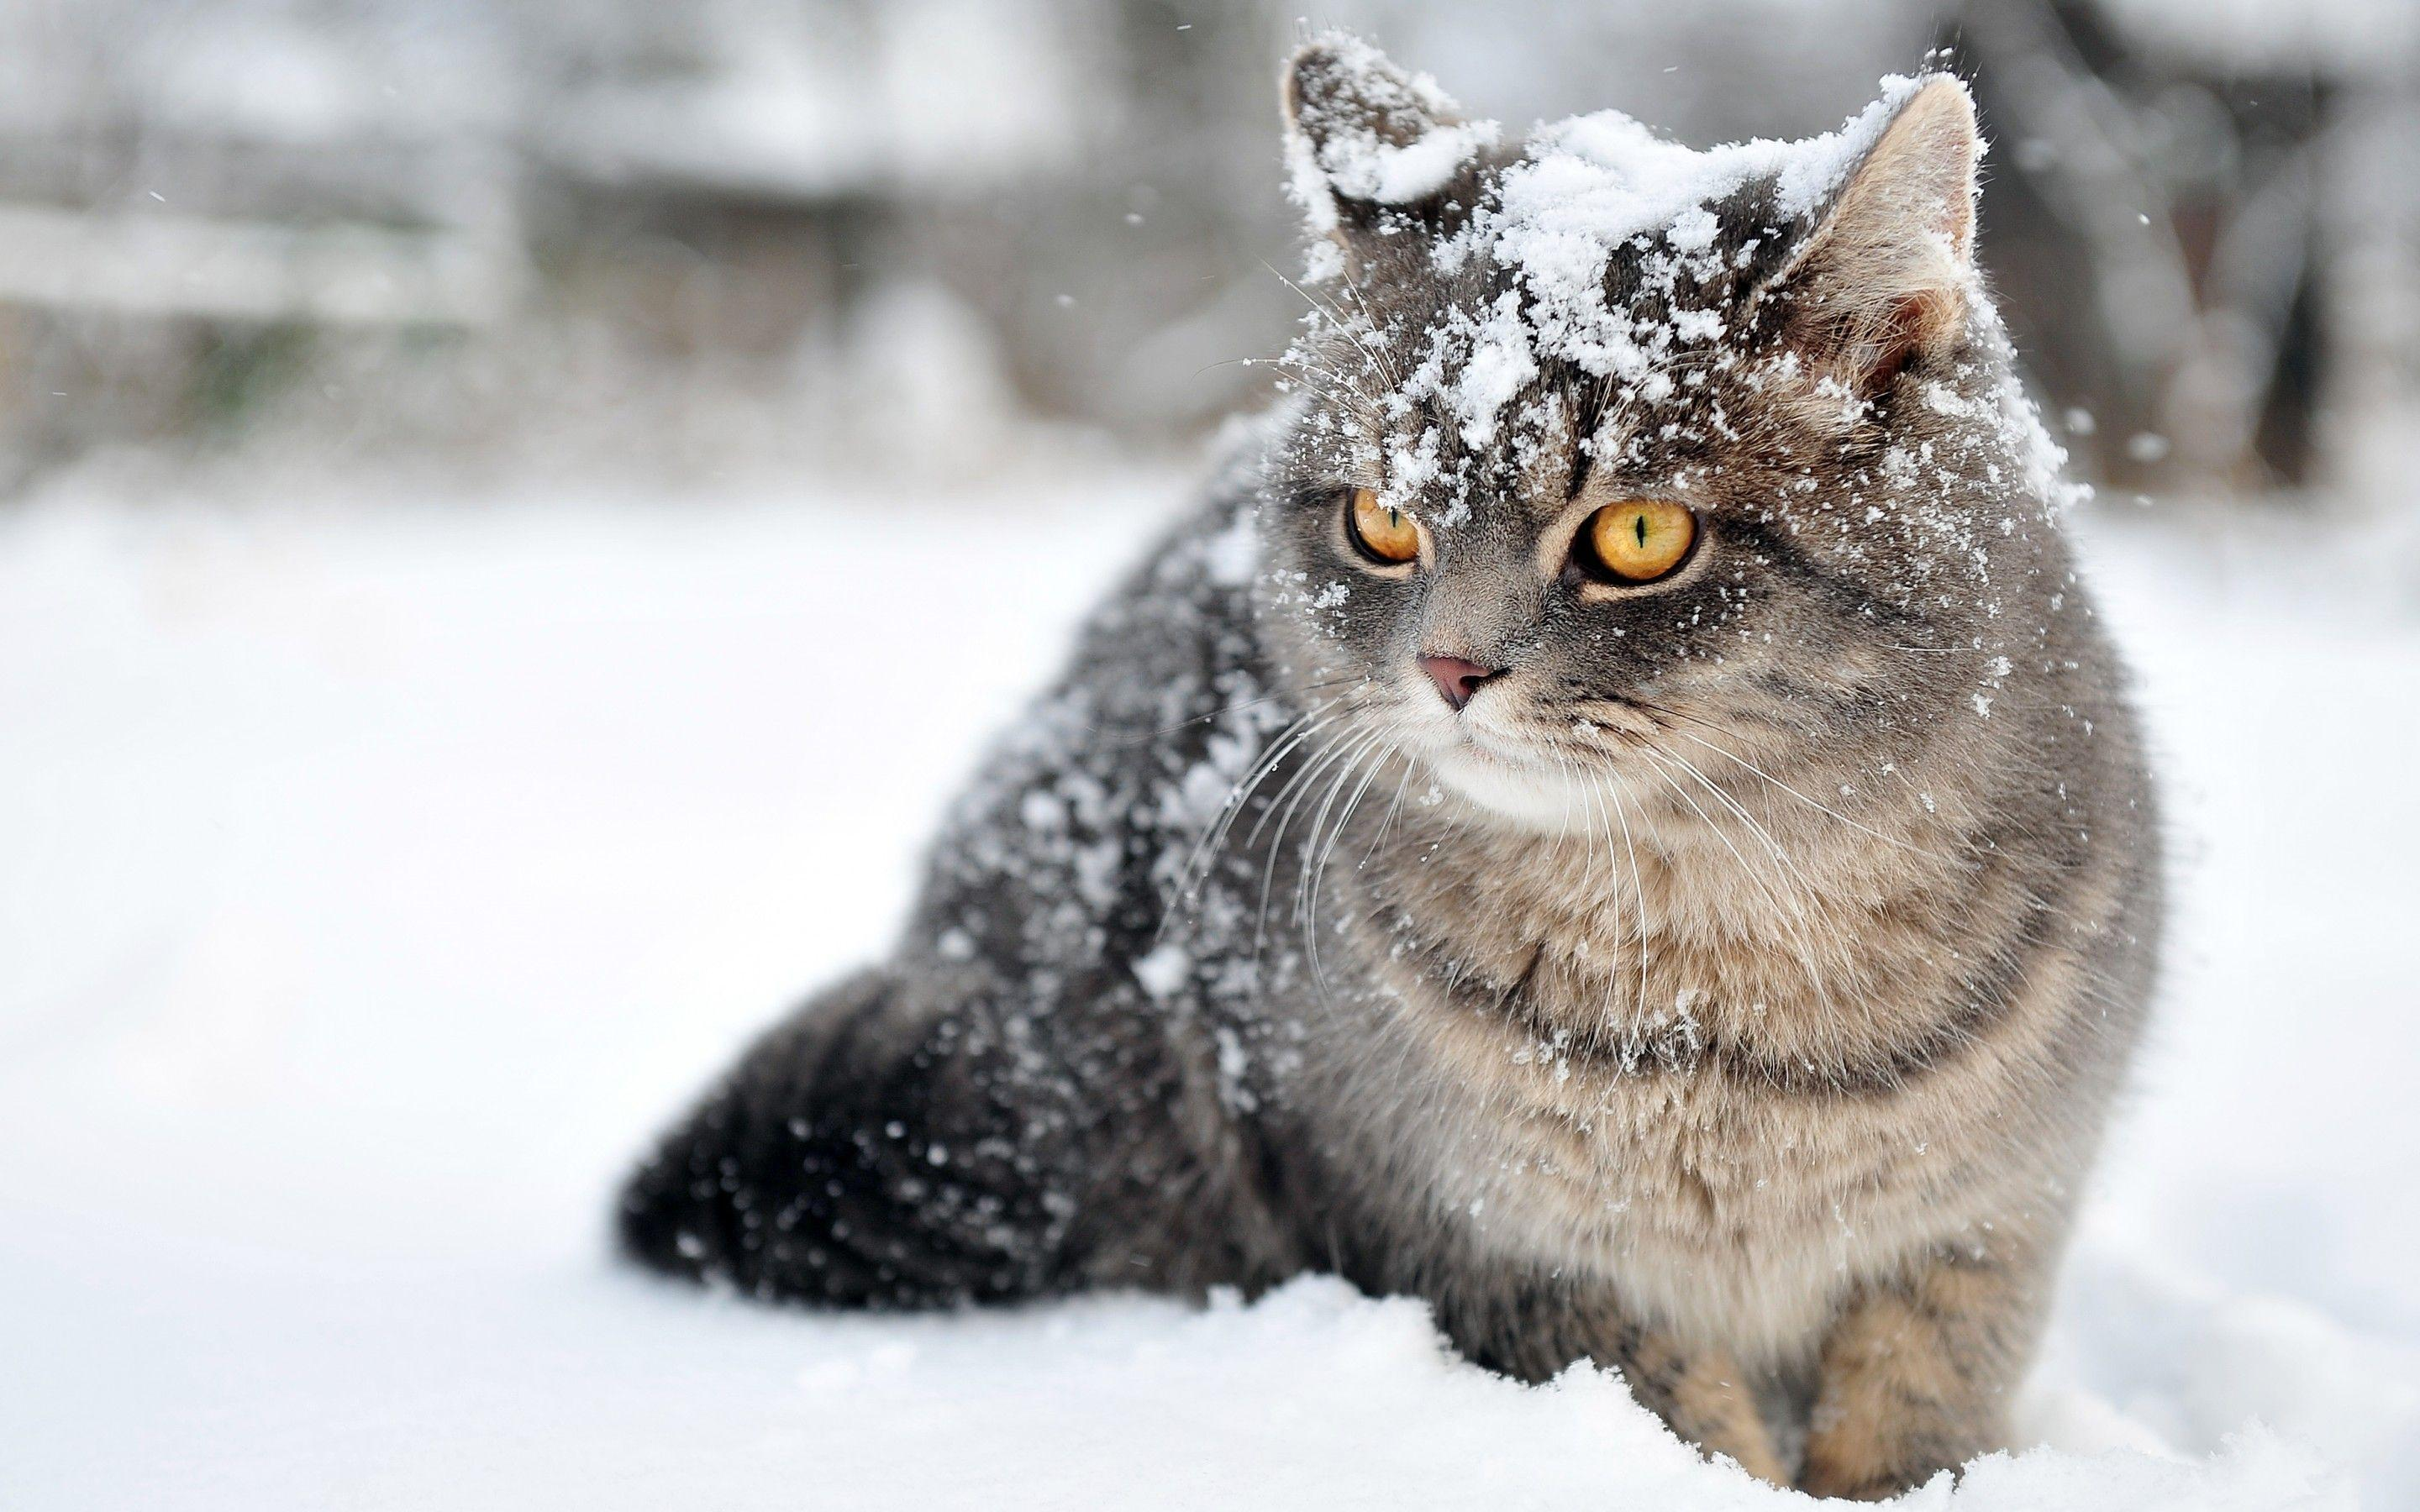 Winter Cat Wallpaper, Animals Wallpaper, hd phone wallpapers